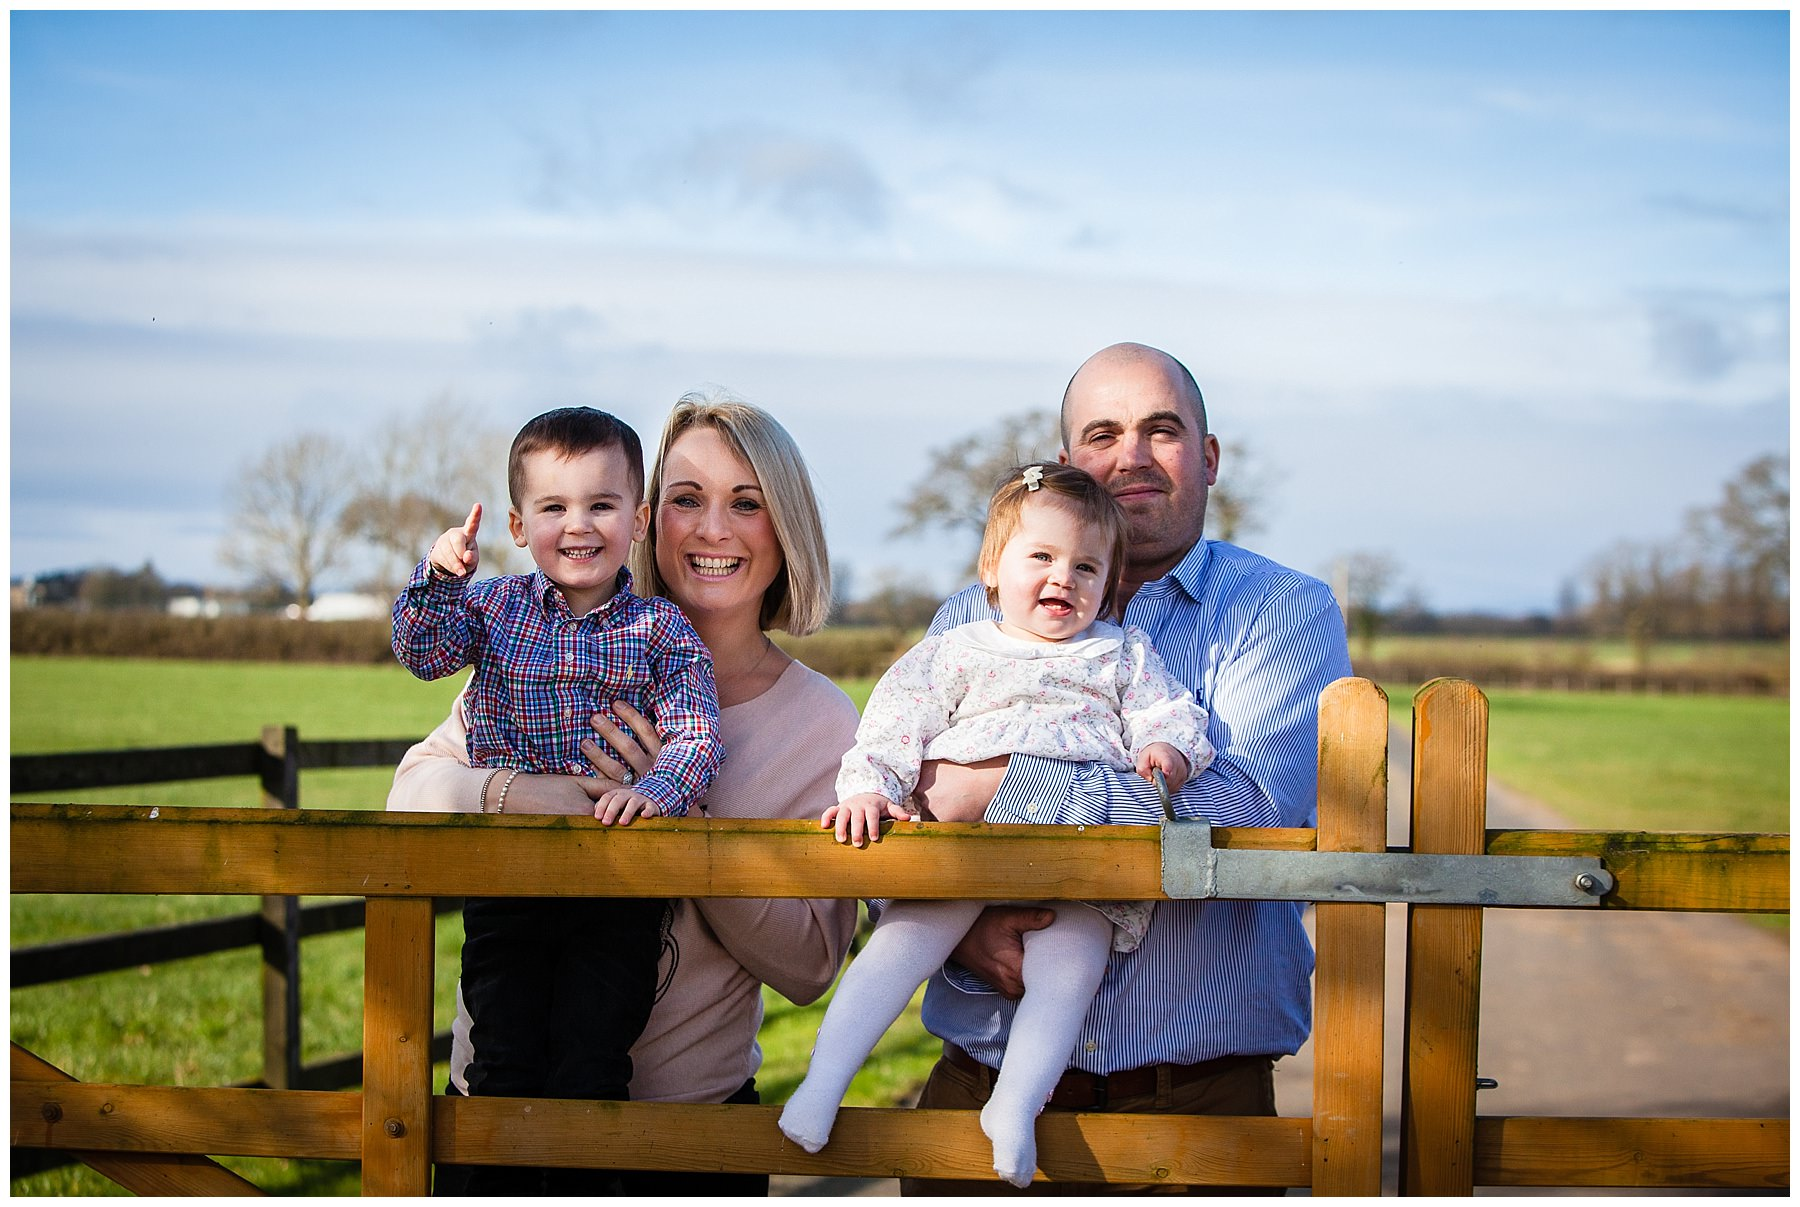 very happy family of four by farm gate all looking content - shropshire photographer